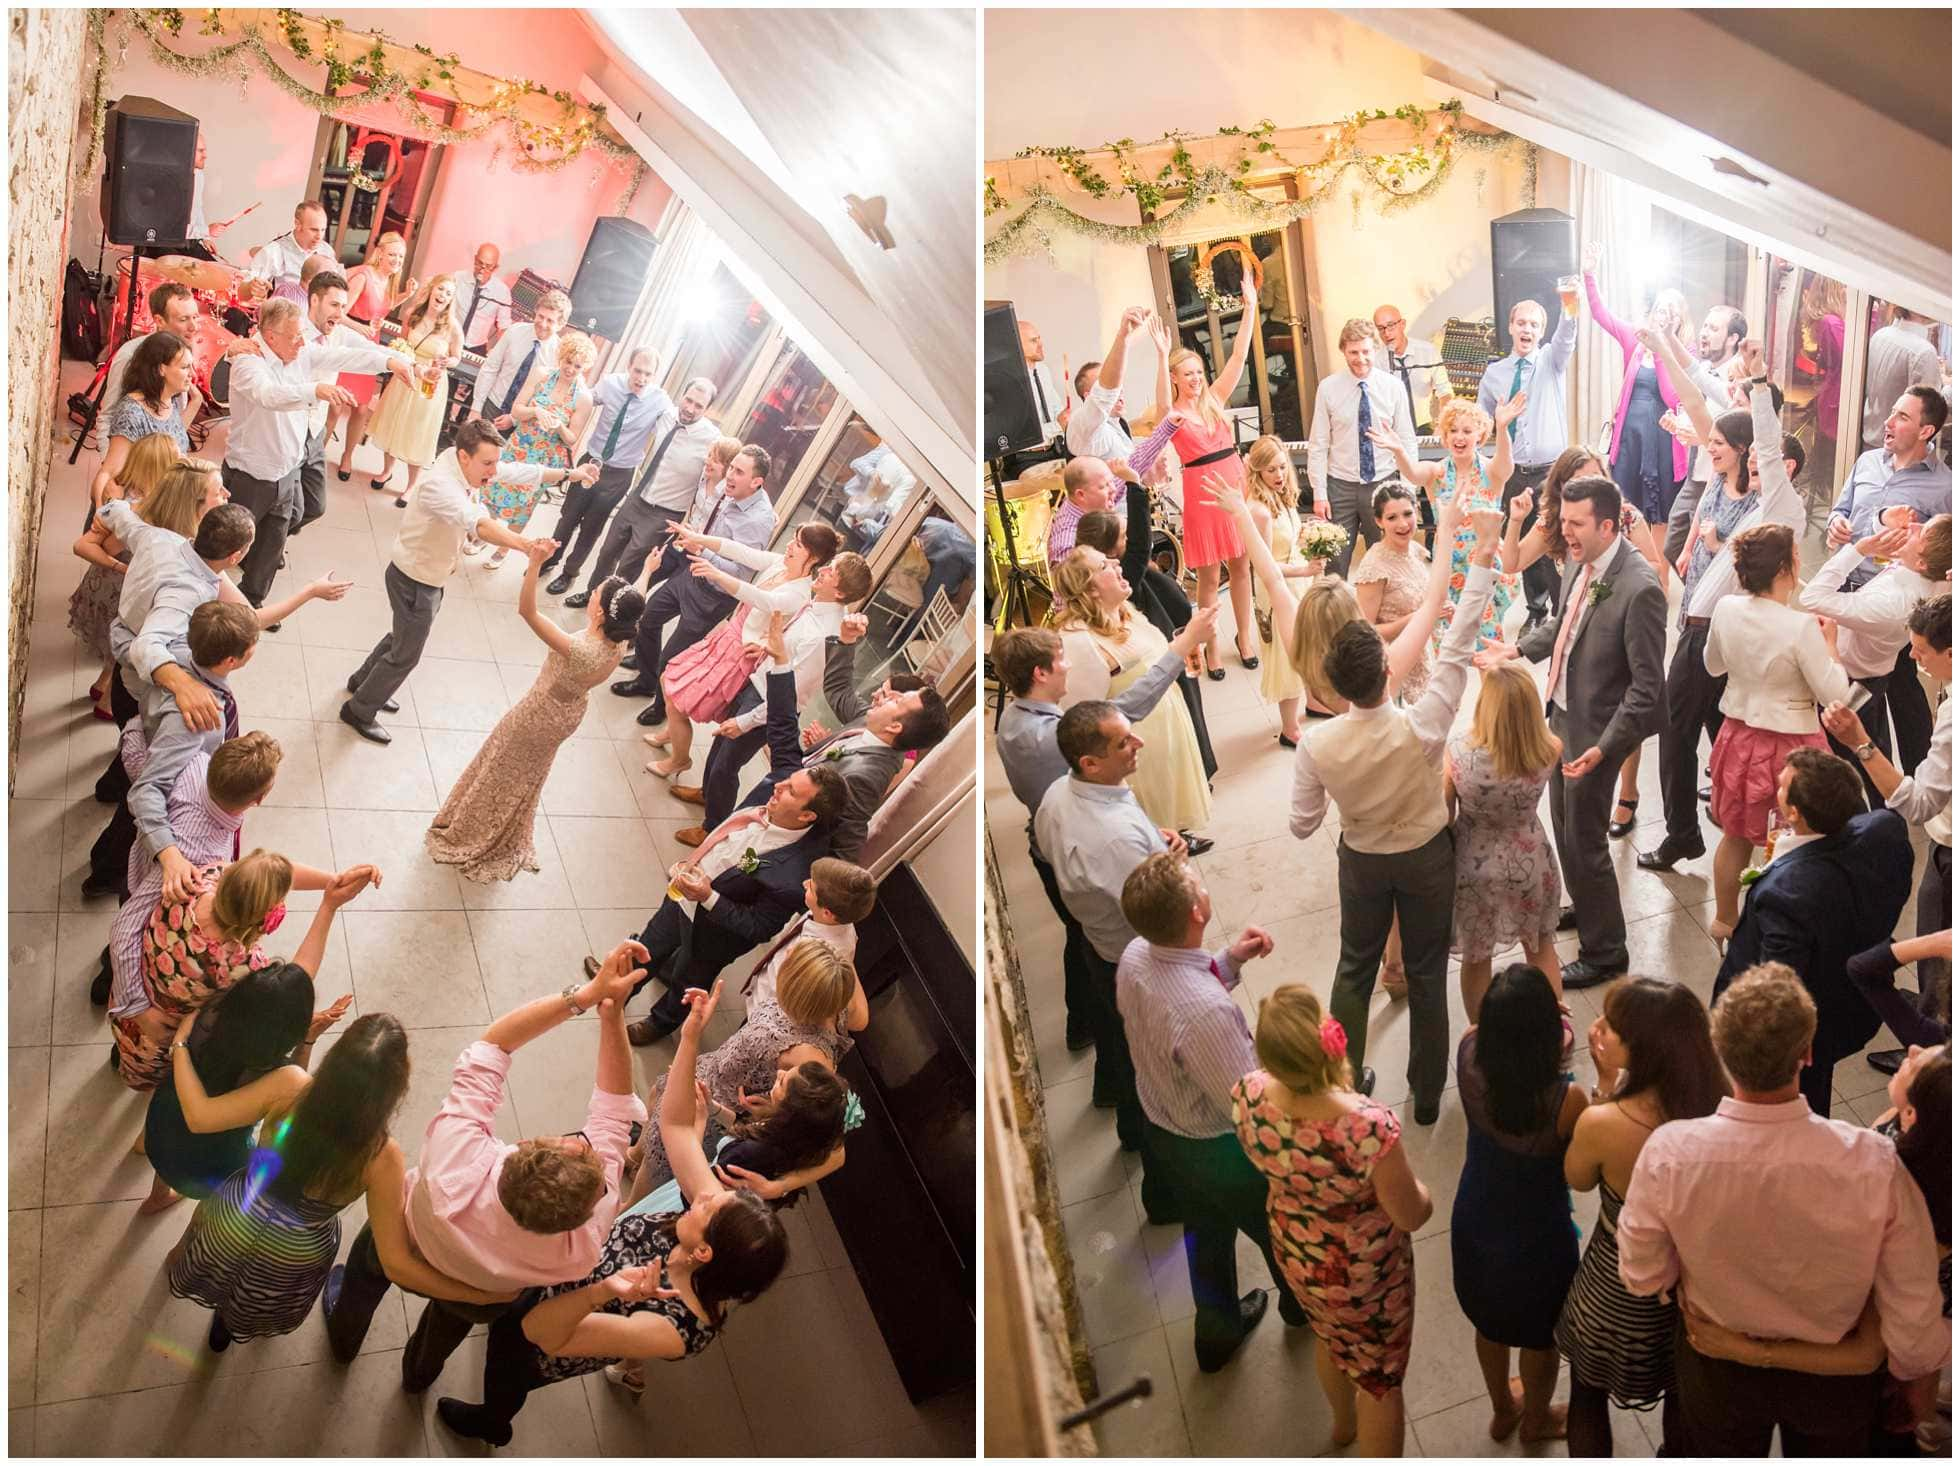 overhead shot of the wedding party dancing at Trevena Cornwall